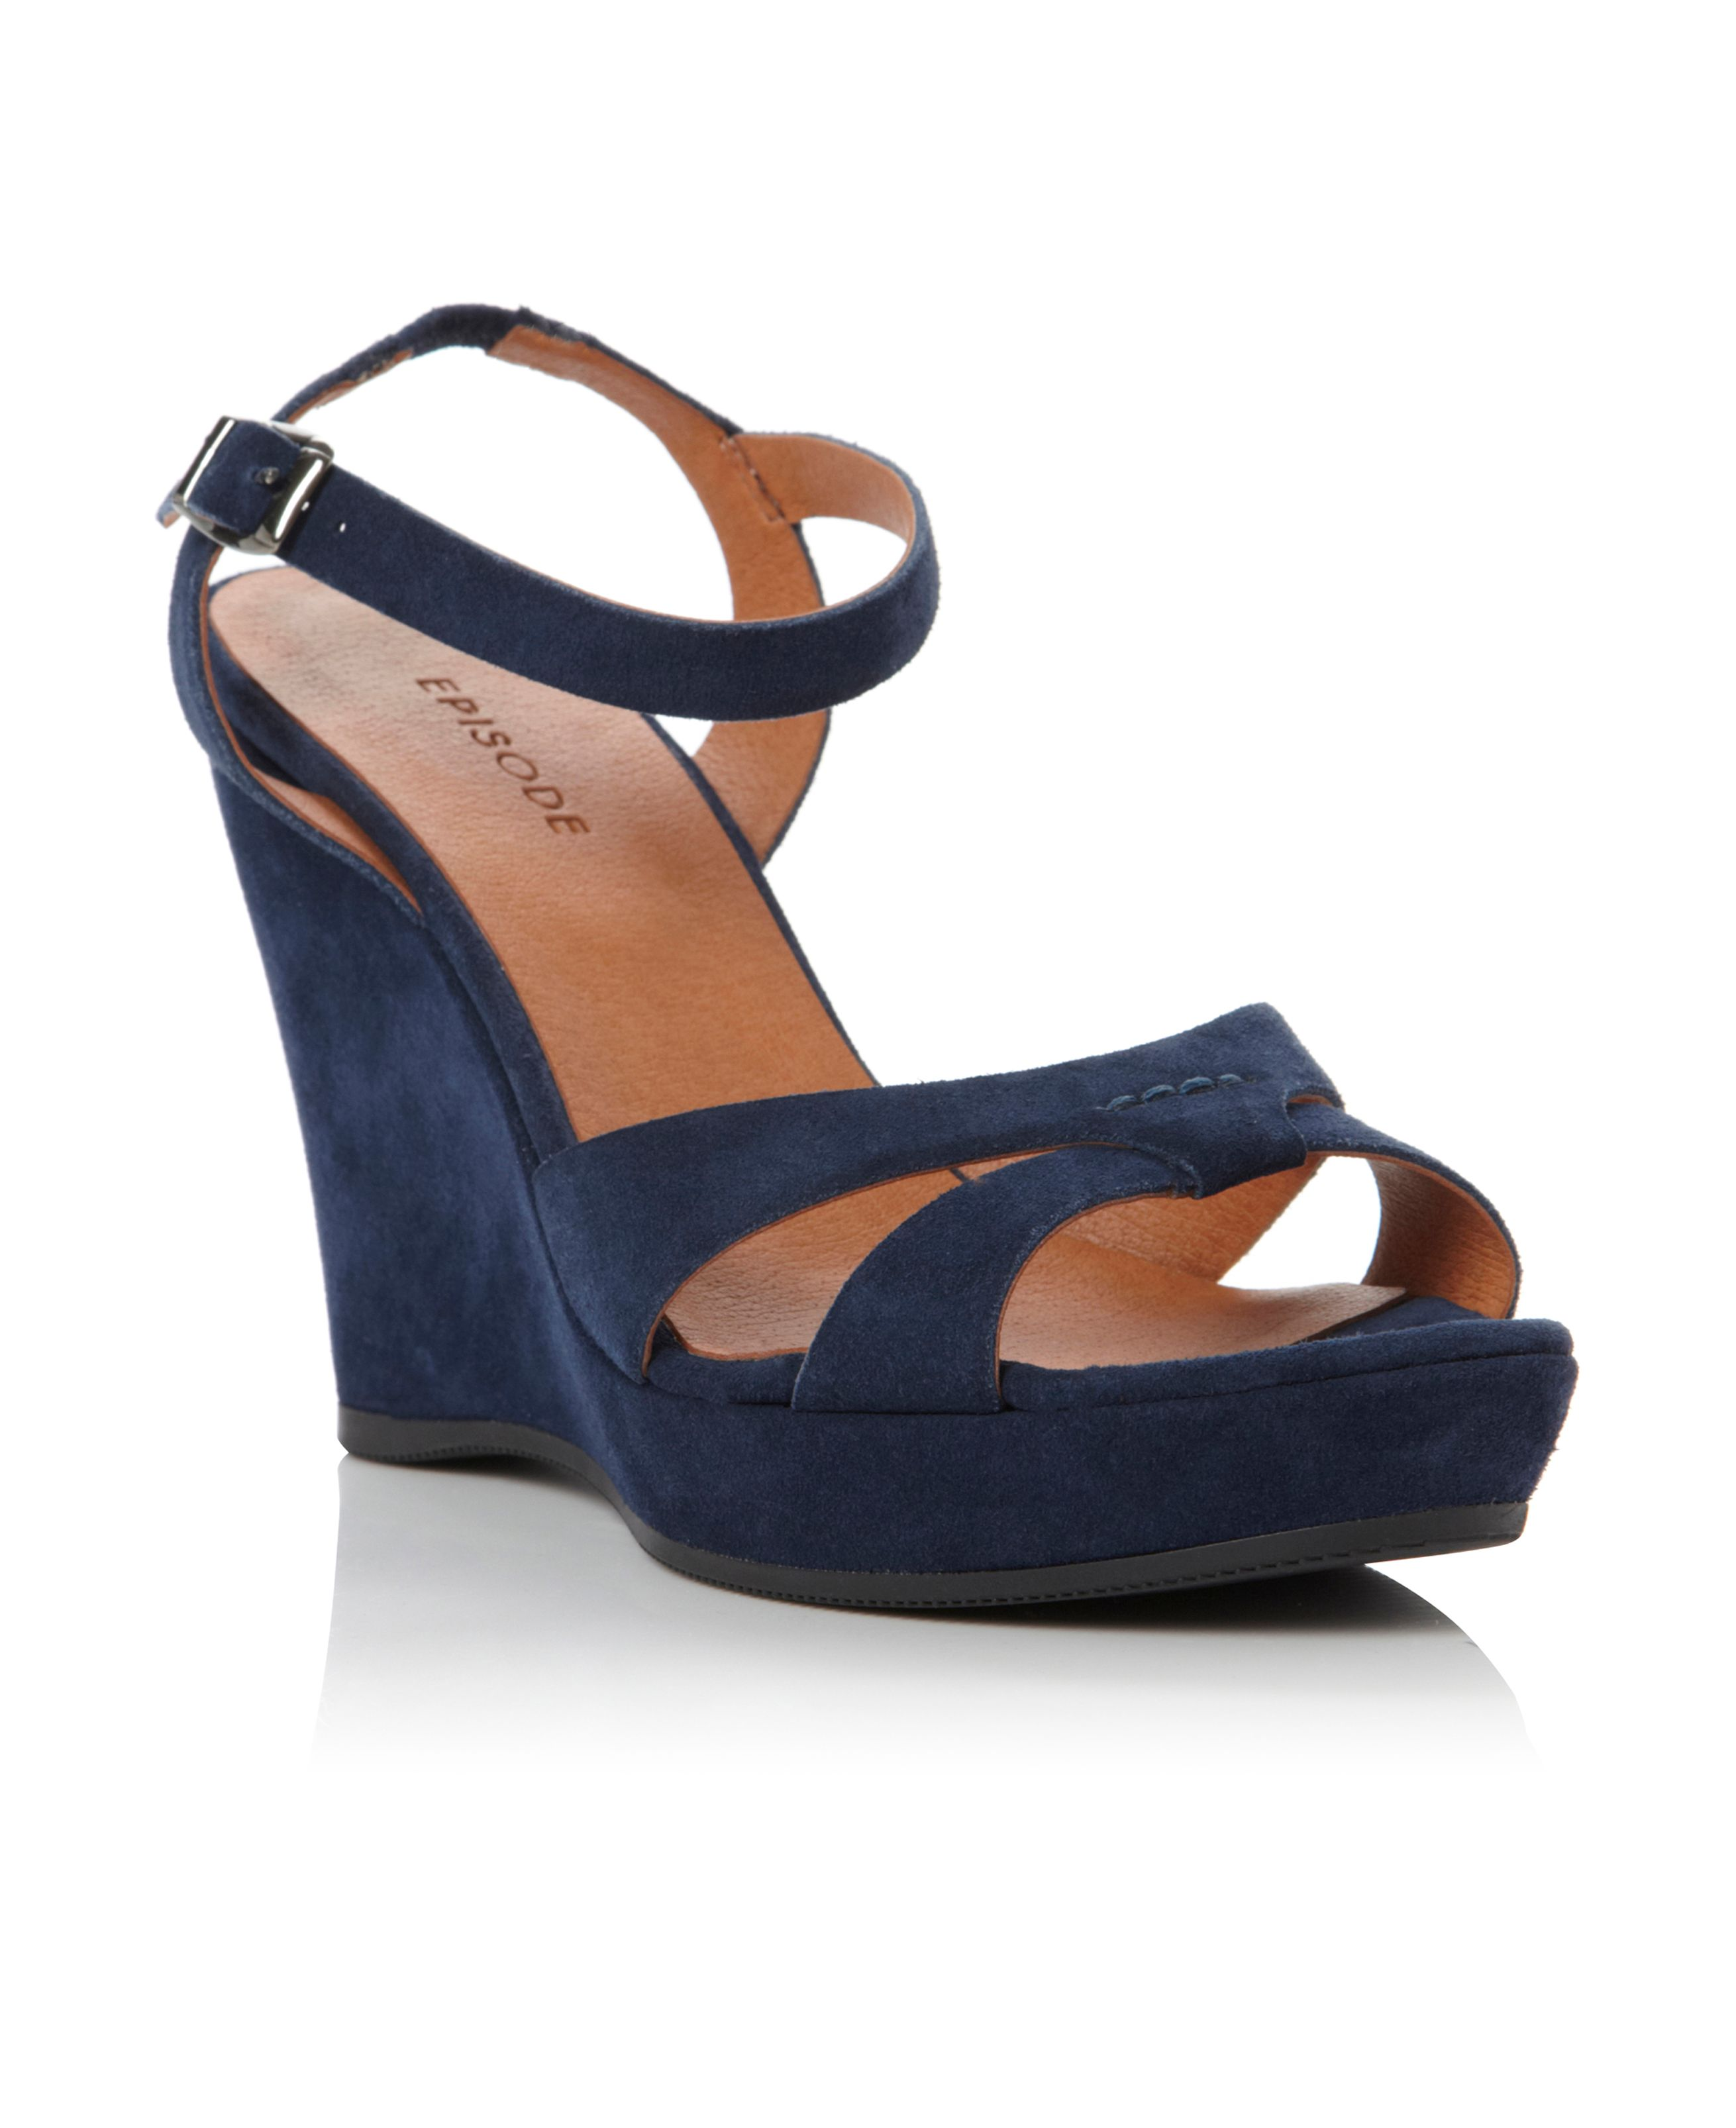 Gratitude ankle strap wedge sandals